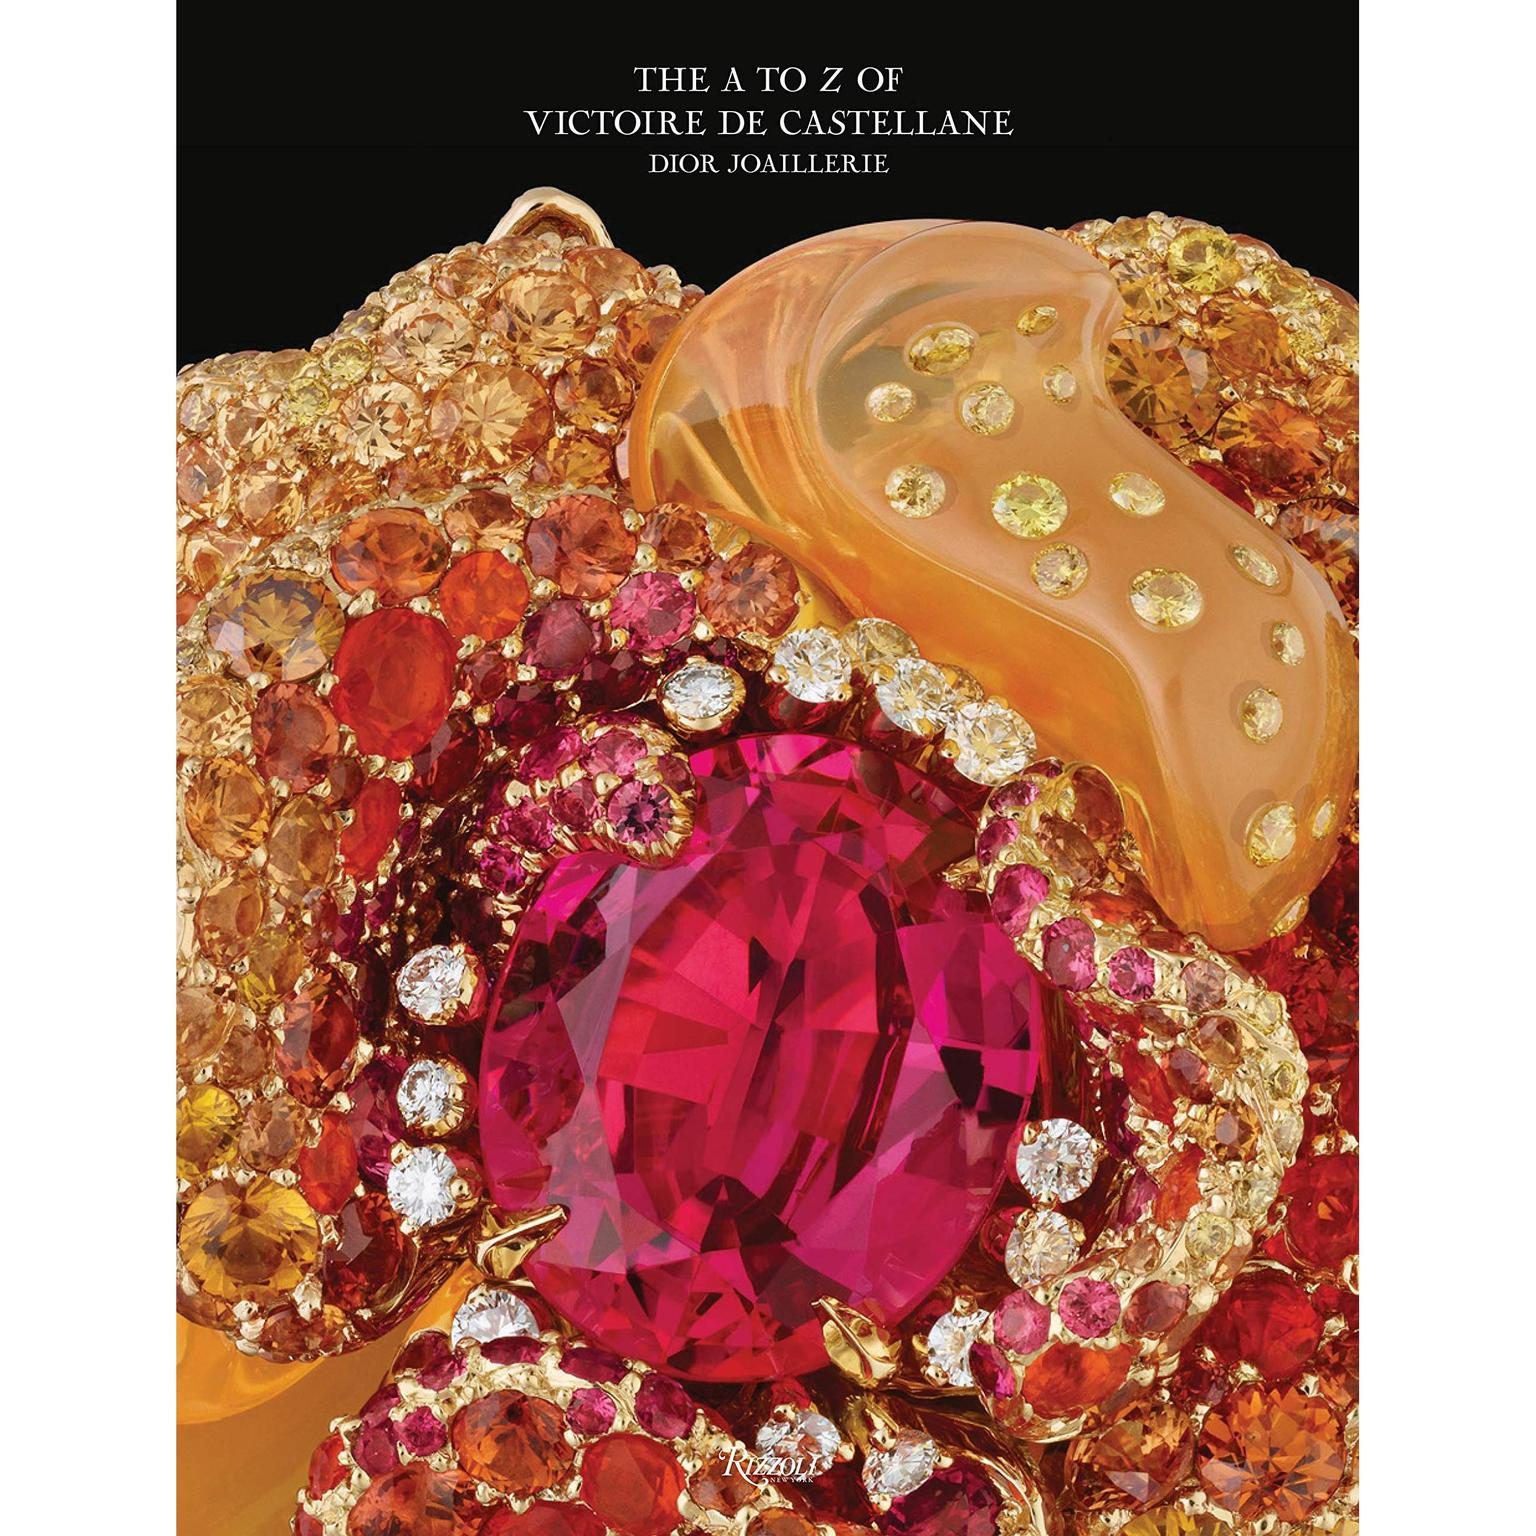 Dior Joaillerie The Dictionary of Victoire de Castellane